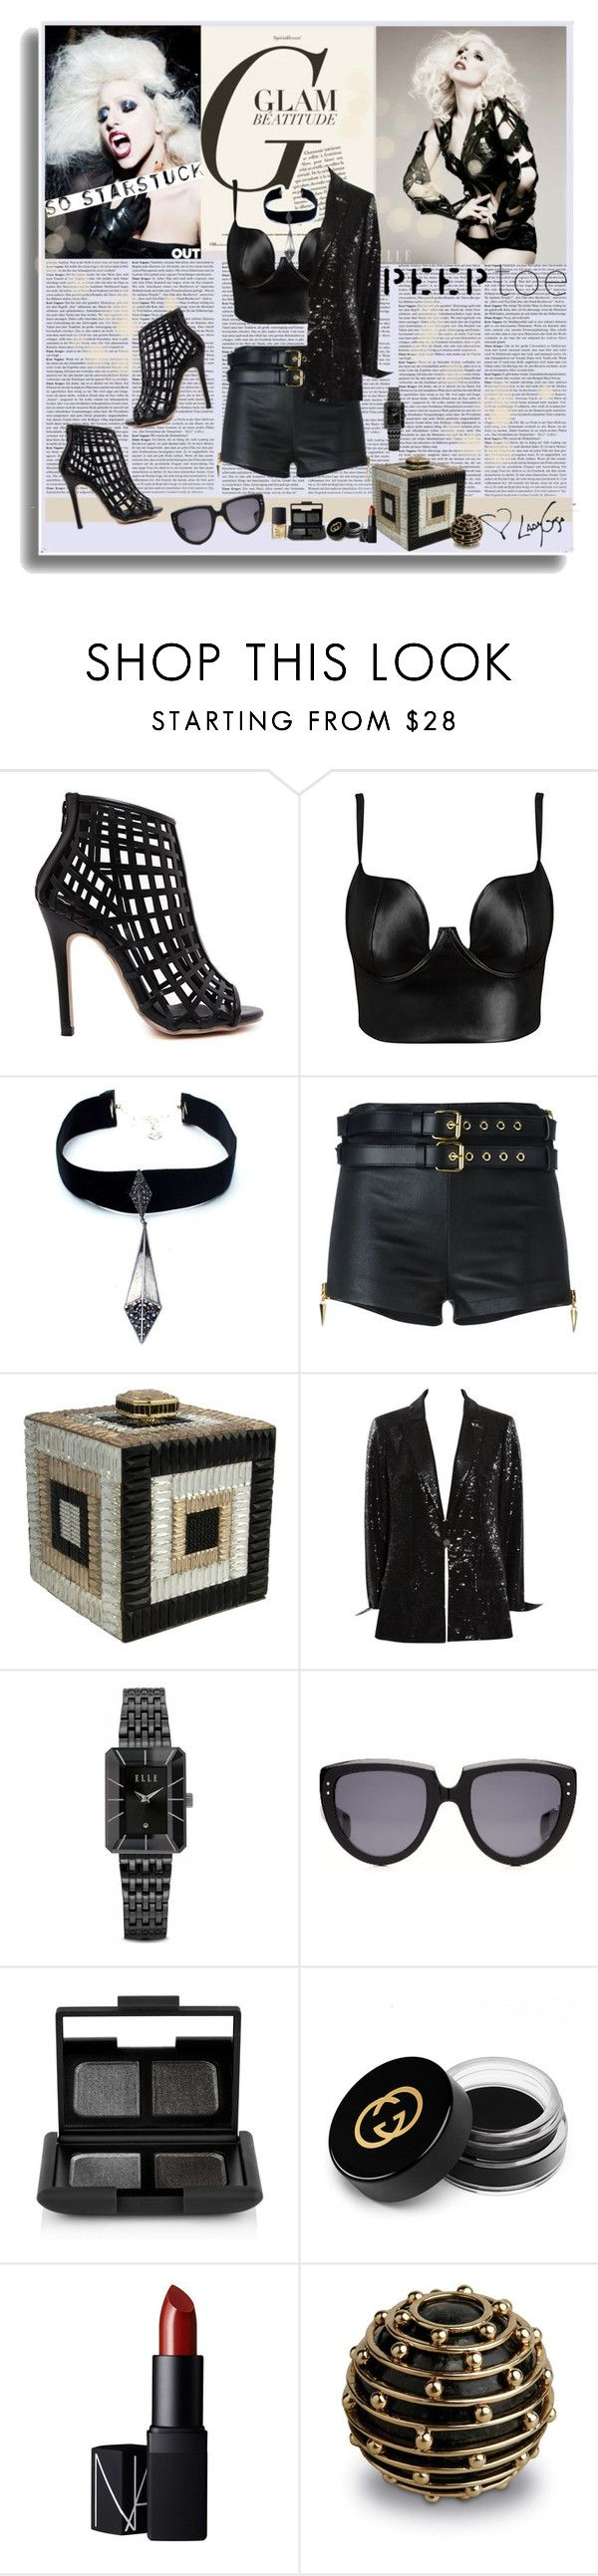 """Gaga"" by polybaby ❤ liked on Polyvore featuring Child Of Wild, Giuseppe Zanotti, Karl Lagerfeld, ELLE Time & Jewelry, Oliver Goldsmith, NARS Cosmetics, Gucci, L'Objet, peeptoe and polyvoreeditorial"